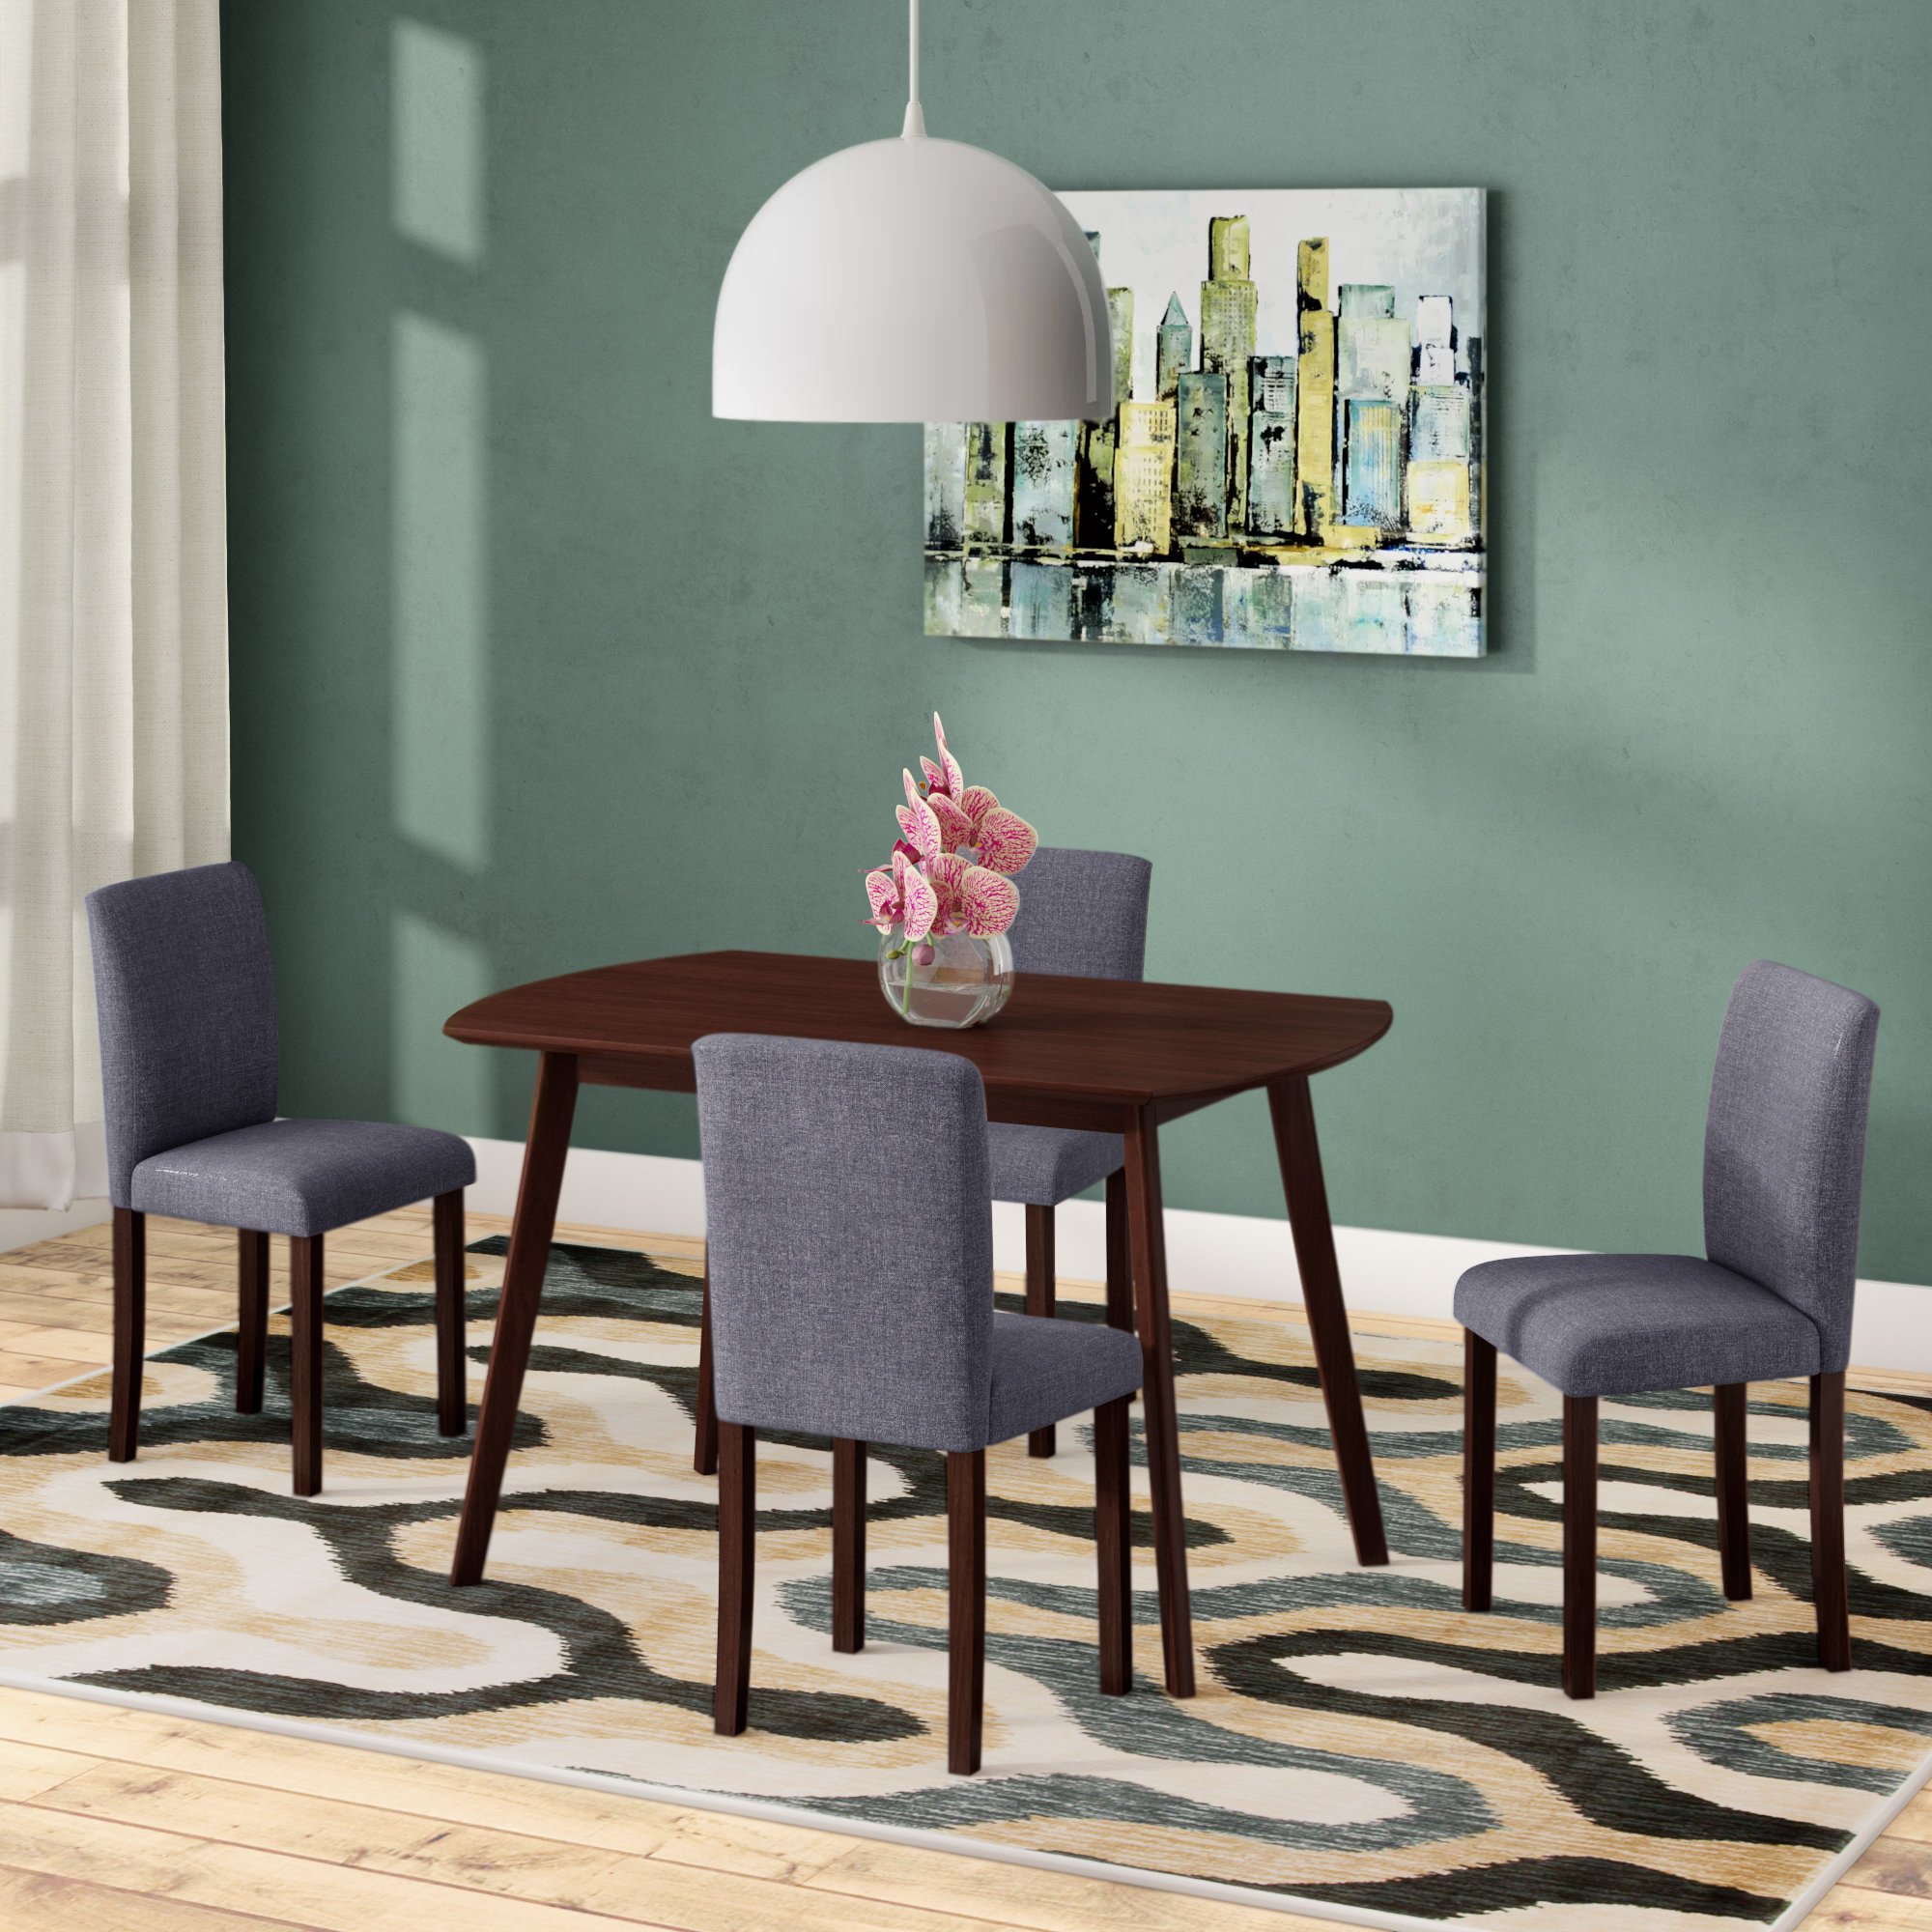 Fashionable Tejeda 5 Piece Dining Sets Intended For Errico 5 Piece Solid Wood Dining Set (View 6 of 20)